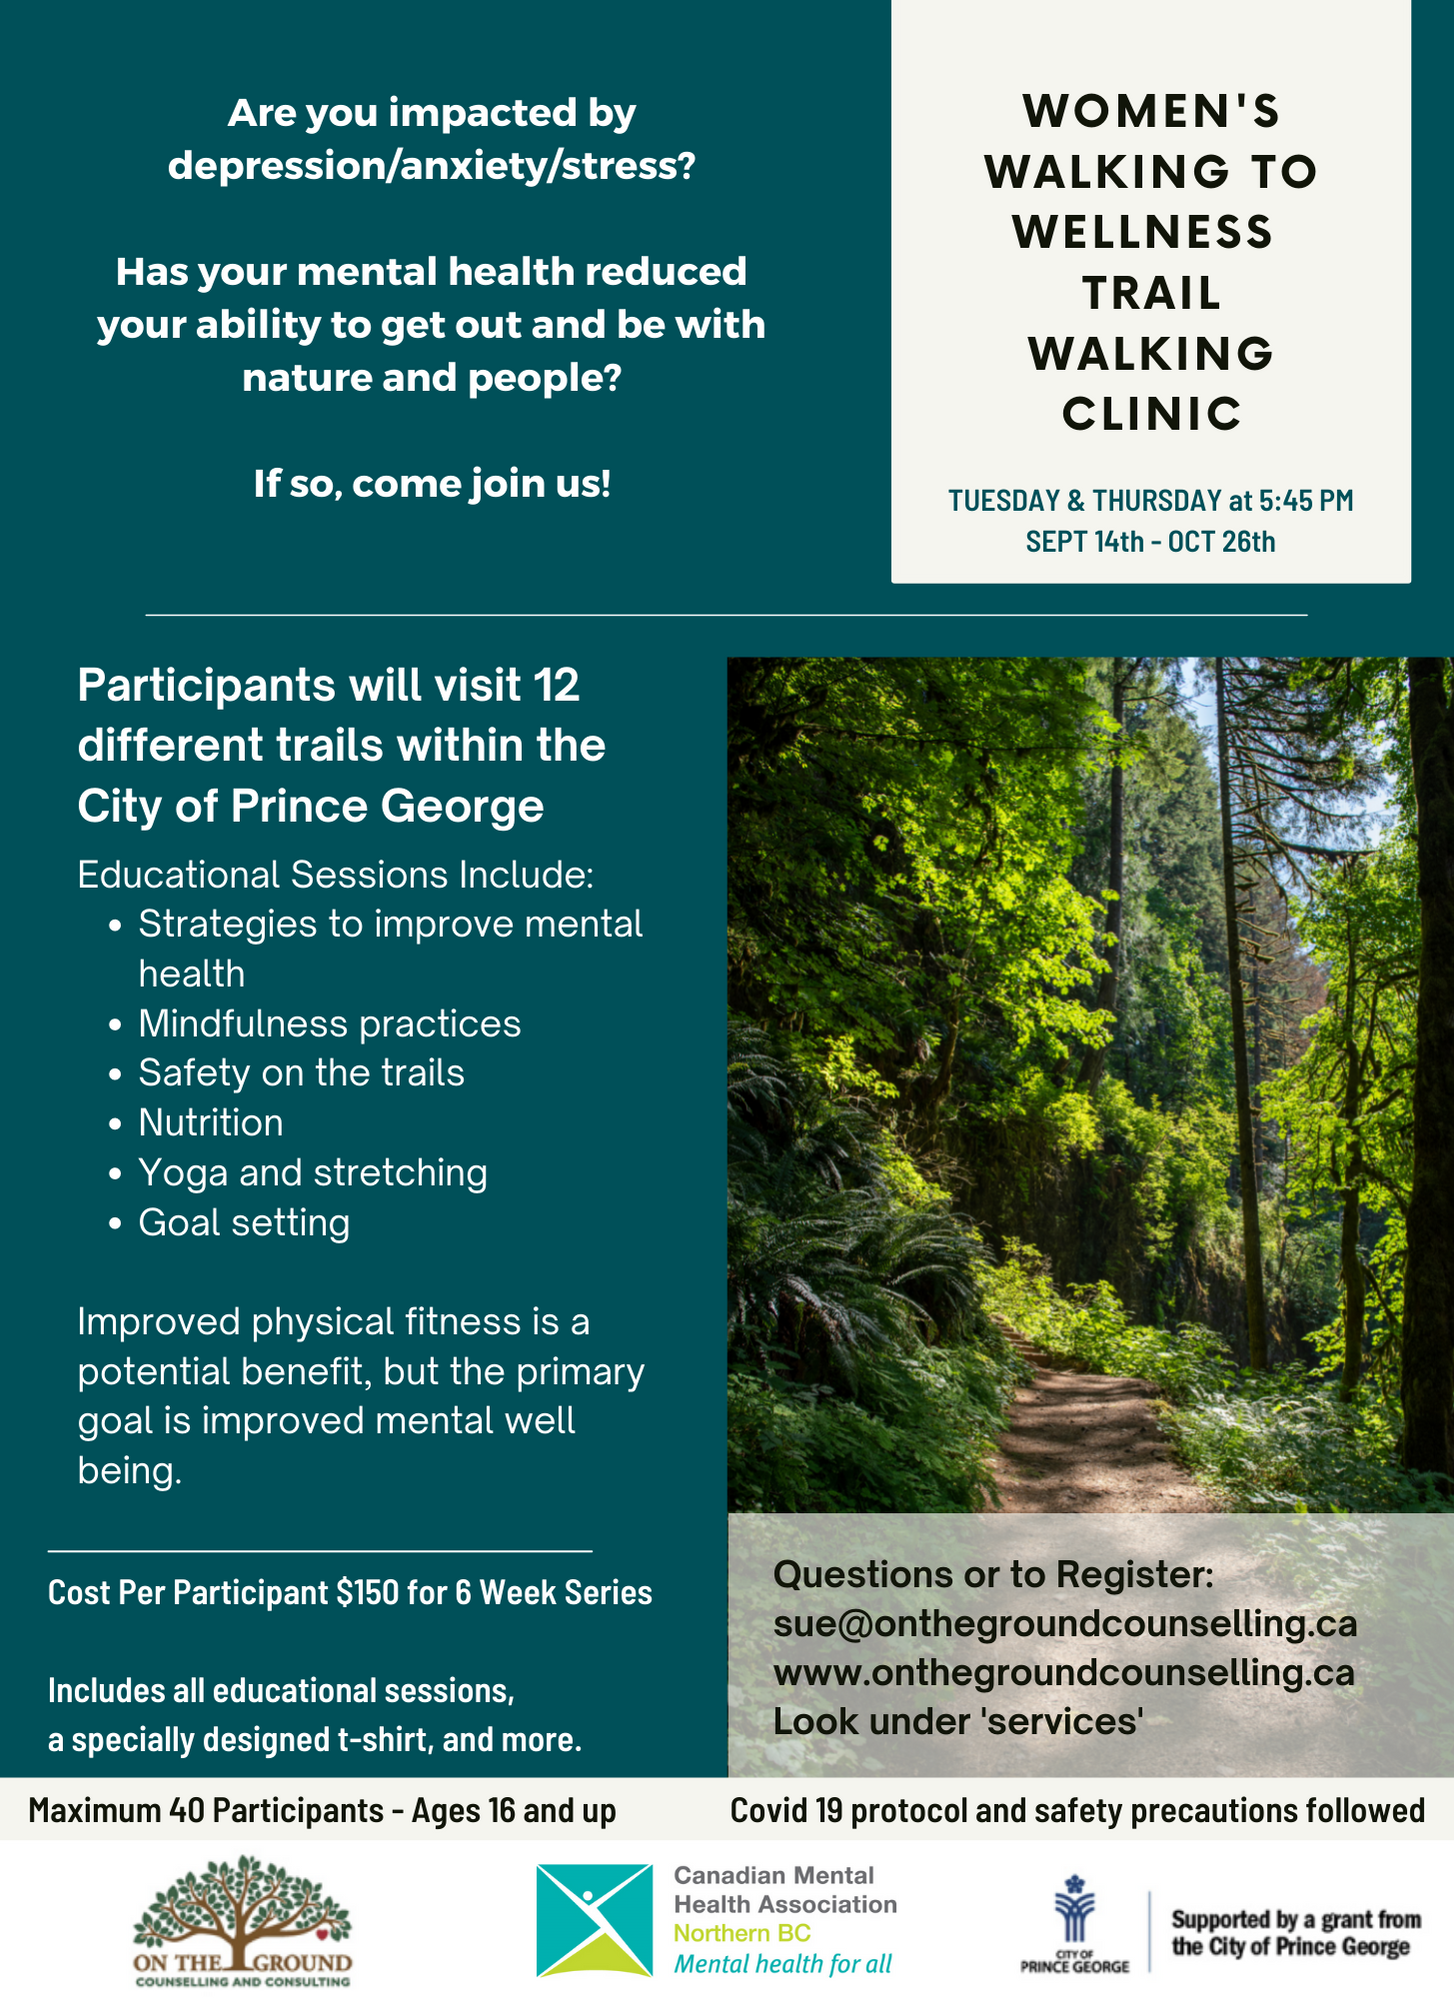 """Walking to Wellness Trail Walking Clinic Poster. Reads """"Are you impacted by depression/anxiety/stress? Has your mental health reduced your ability to get out and be with nature and people? If so, come join us! Women's Walking to Wellness Trail Walking Clinic Tuesday & Thursday at 5:45 PM Sept 14th - Oct 26th. Participants will visit 12 different trails within the City of Prince George. Educational Sessions Include: strategies to improve mental health, mindfulness practices, safety on the trails, nutrition, yoga and stretching, goal setting. Improved physical fitness is a potential benefit, but the primary goal is improved mental well being. Cost Per Participant $150 for 6 week series. Includes all educational sessions, a specially designed t-shirt, and more. Questions or to Register: sue@onthegroundcounselling.ca www.onthegroundcounselling.ca Look under services. Maximum 40 Participants - Ages 16 and up. Covid 19 protocol and safety precautions followed. Poster shows a picture of a hiking trail. At the bottom, there are the On the Ground Counselling logo, the CMHA Northern BC logo, and the City of Prince George logo. Supported by a grant from the City of Prince George."""